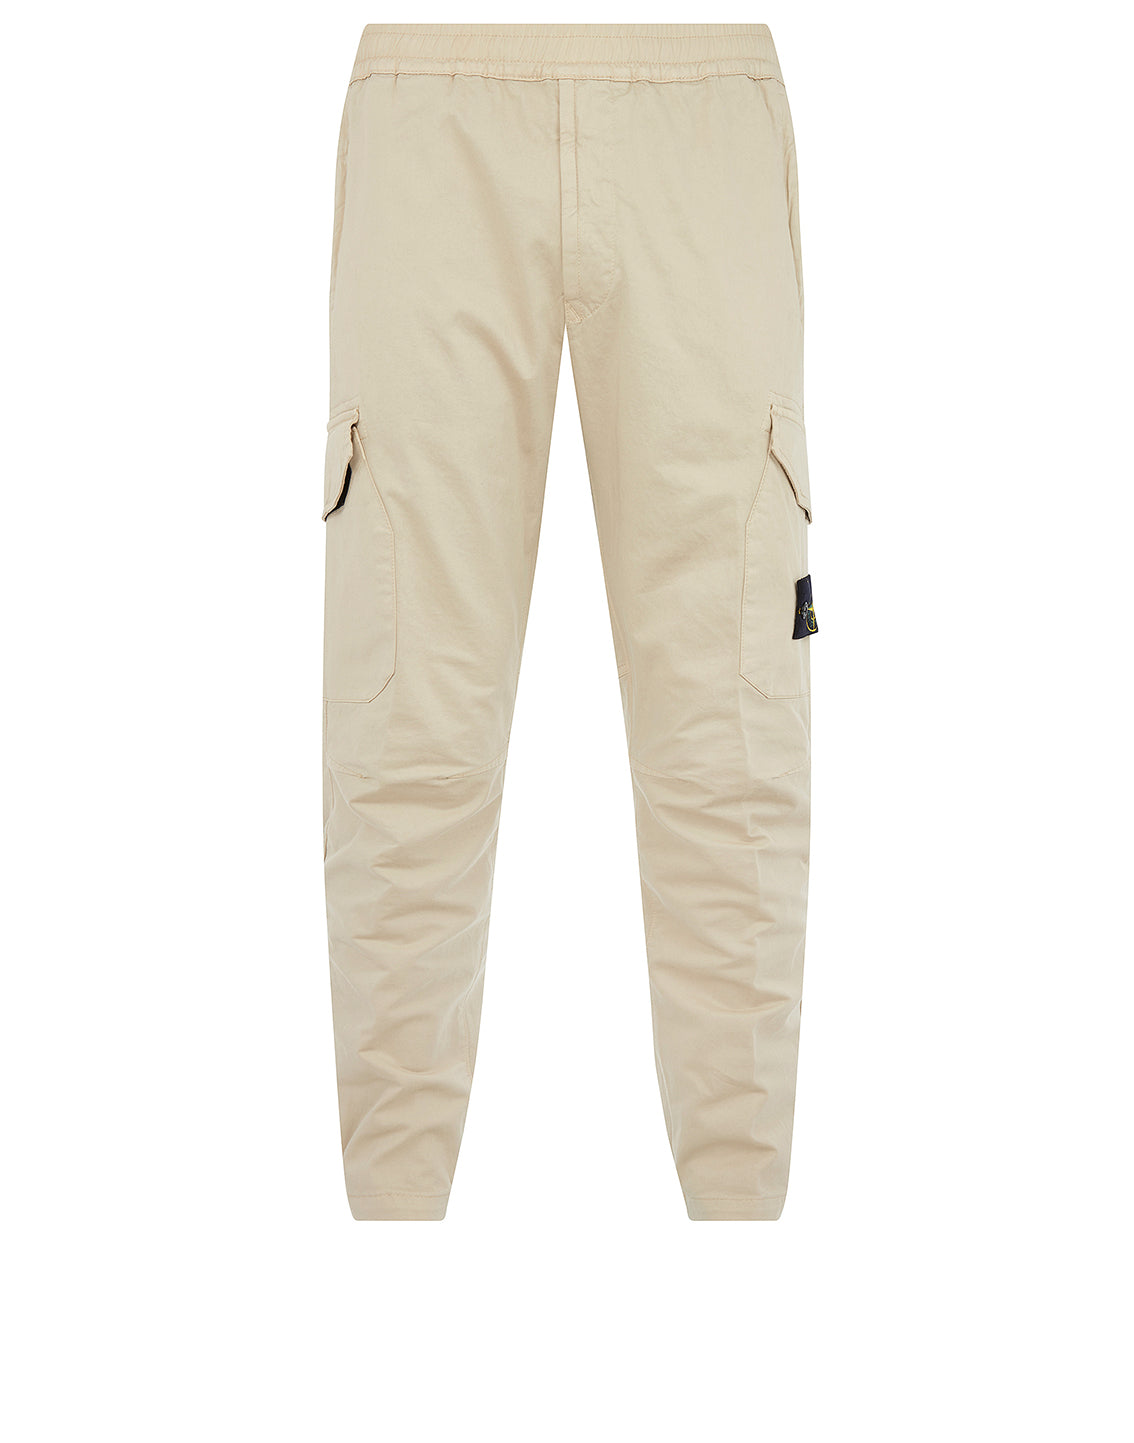 31914 Cargo Trousers in Sand